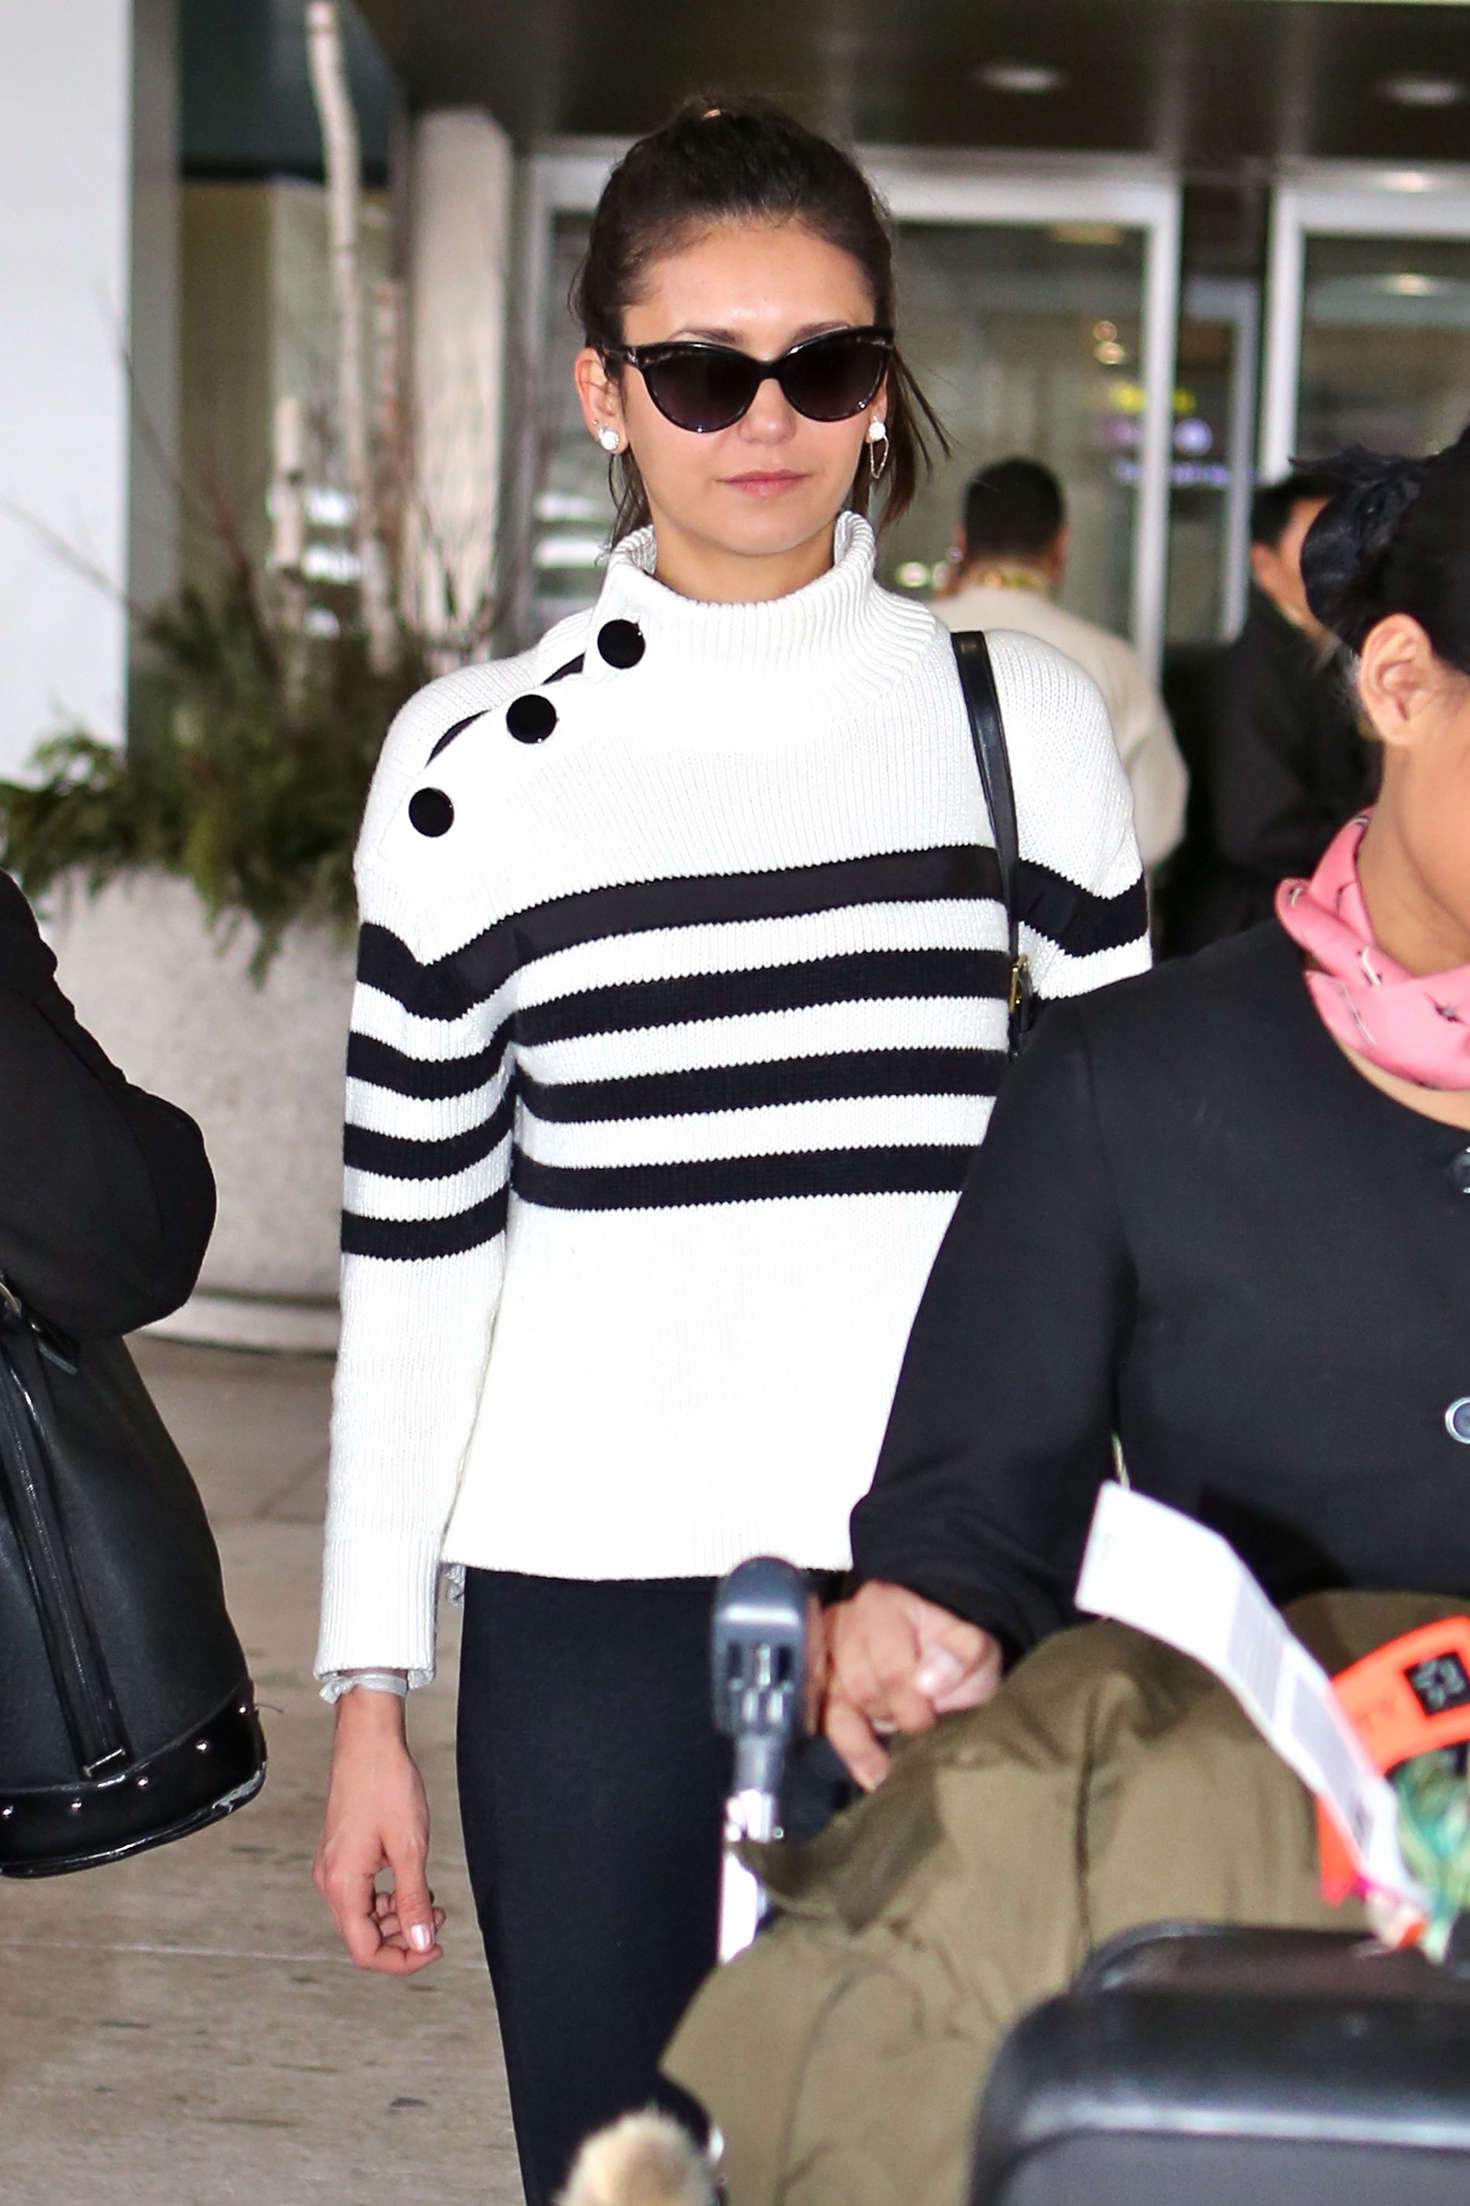 Nina Dobrev at Pearson International Airport-1